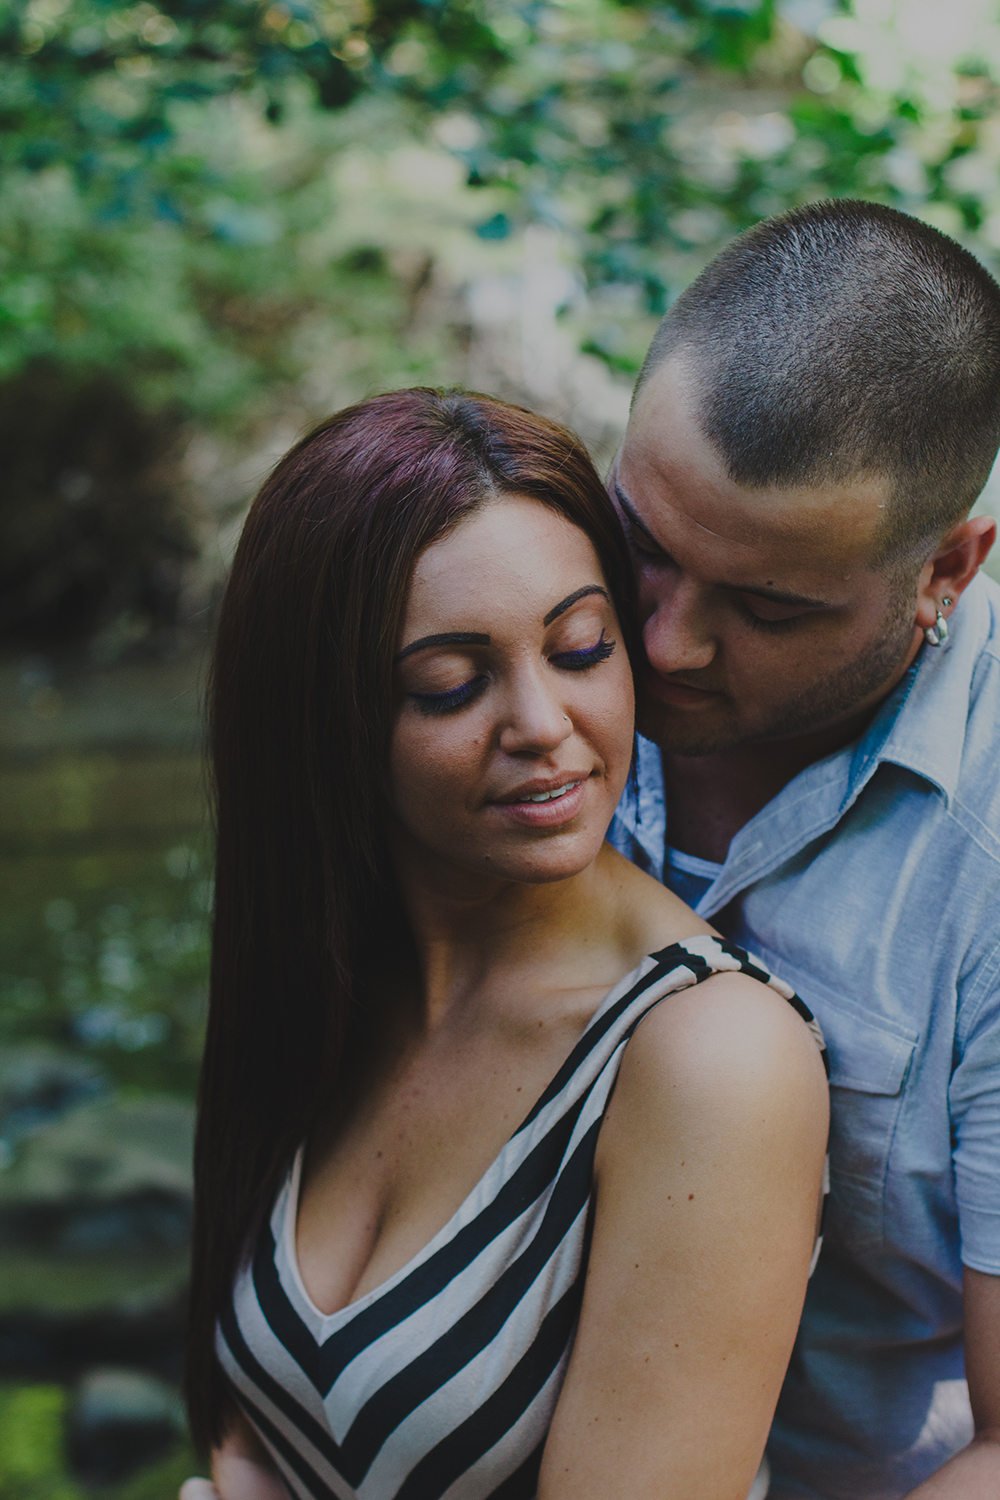 Outdoor engagement photography at Corbett's Glen Nature Park in Rochester, NY.